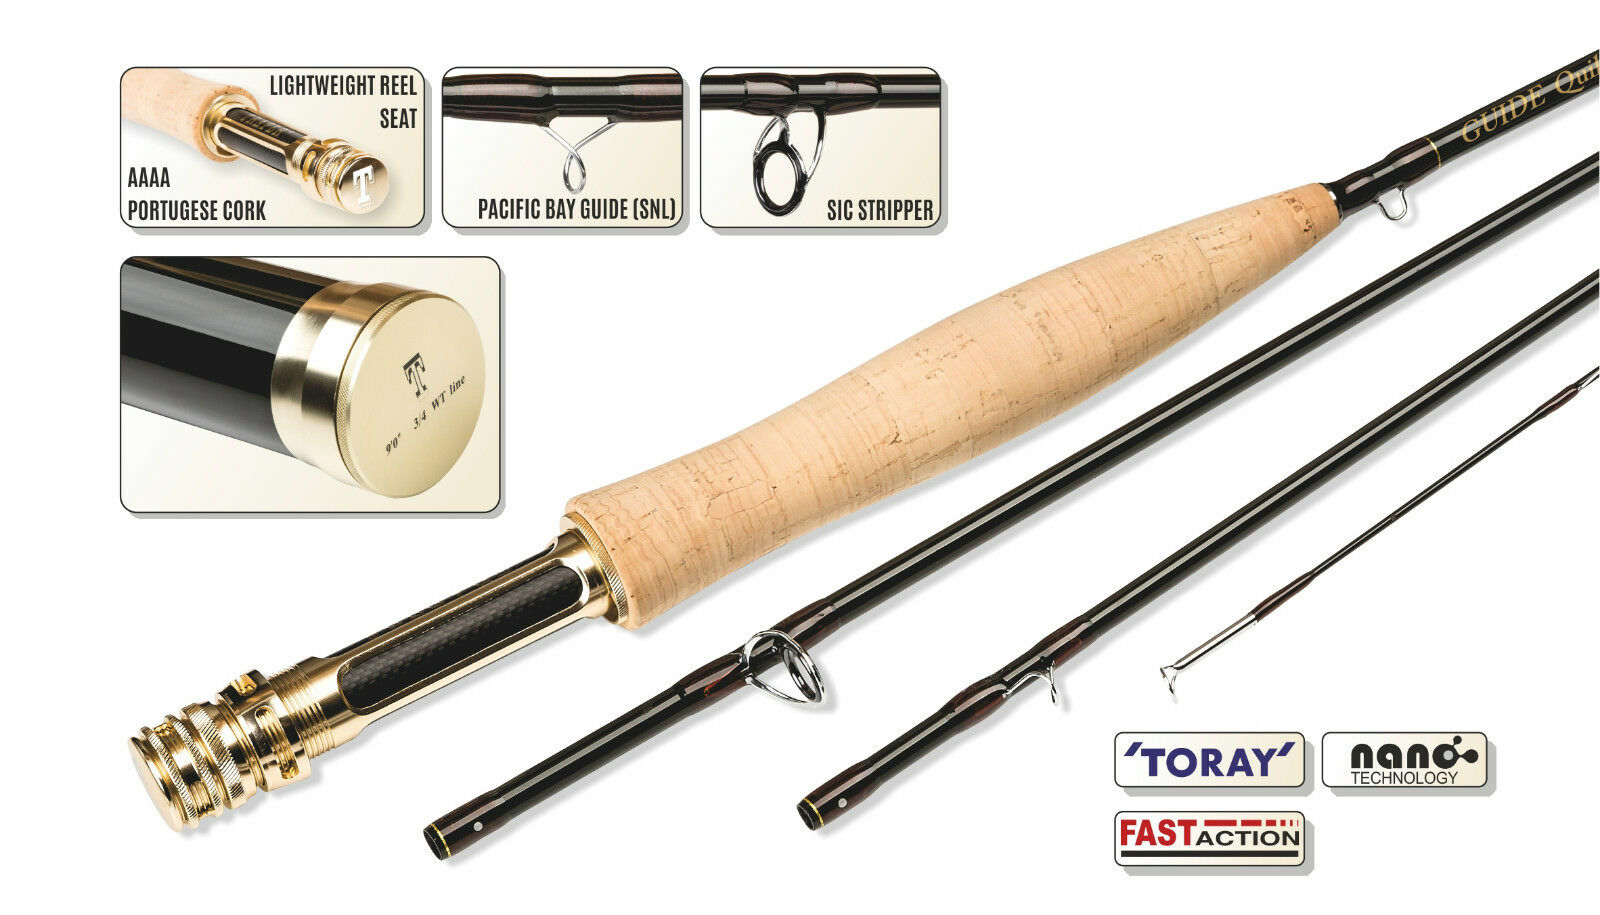 Traper Guide Nymph SF Competition Fly Rod 10ft  305cm-AFTM 4 pcs, 25y warranty  select from the newest brands like